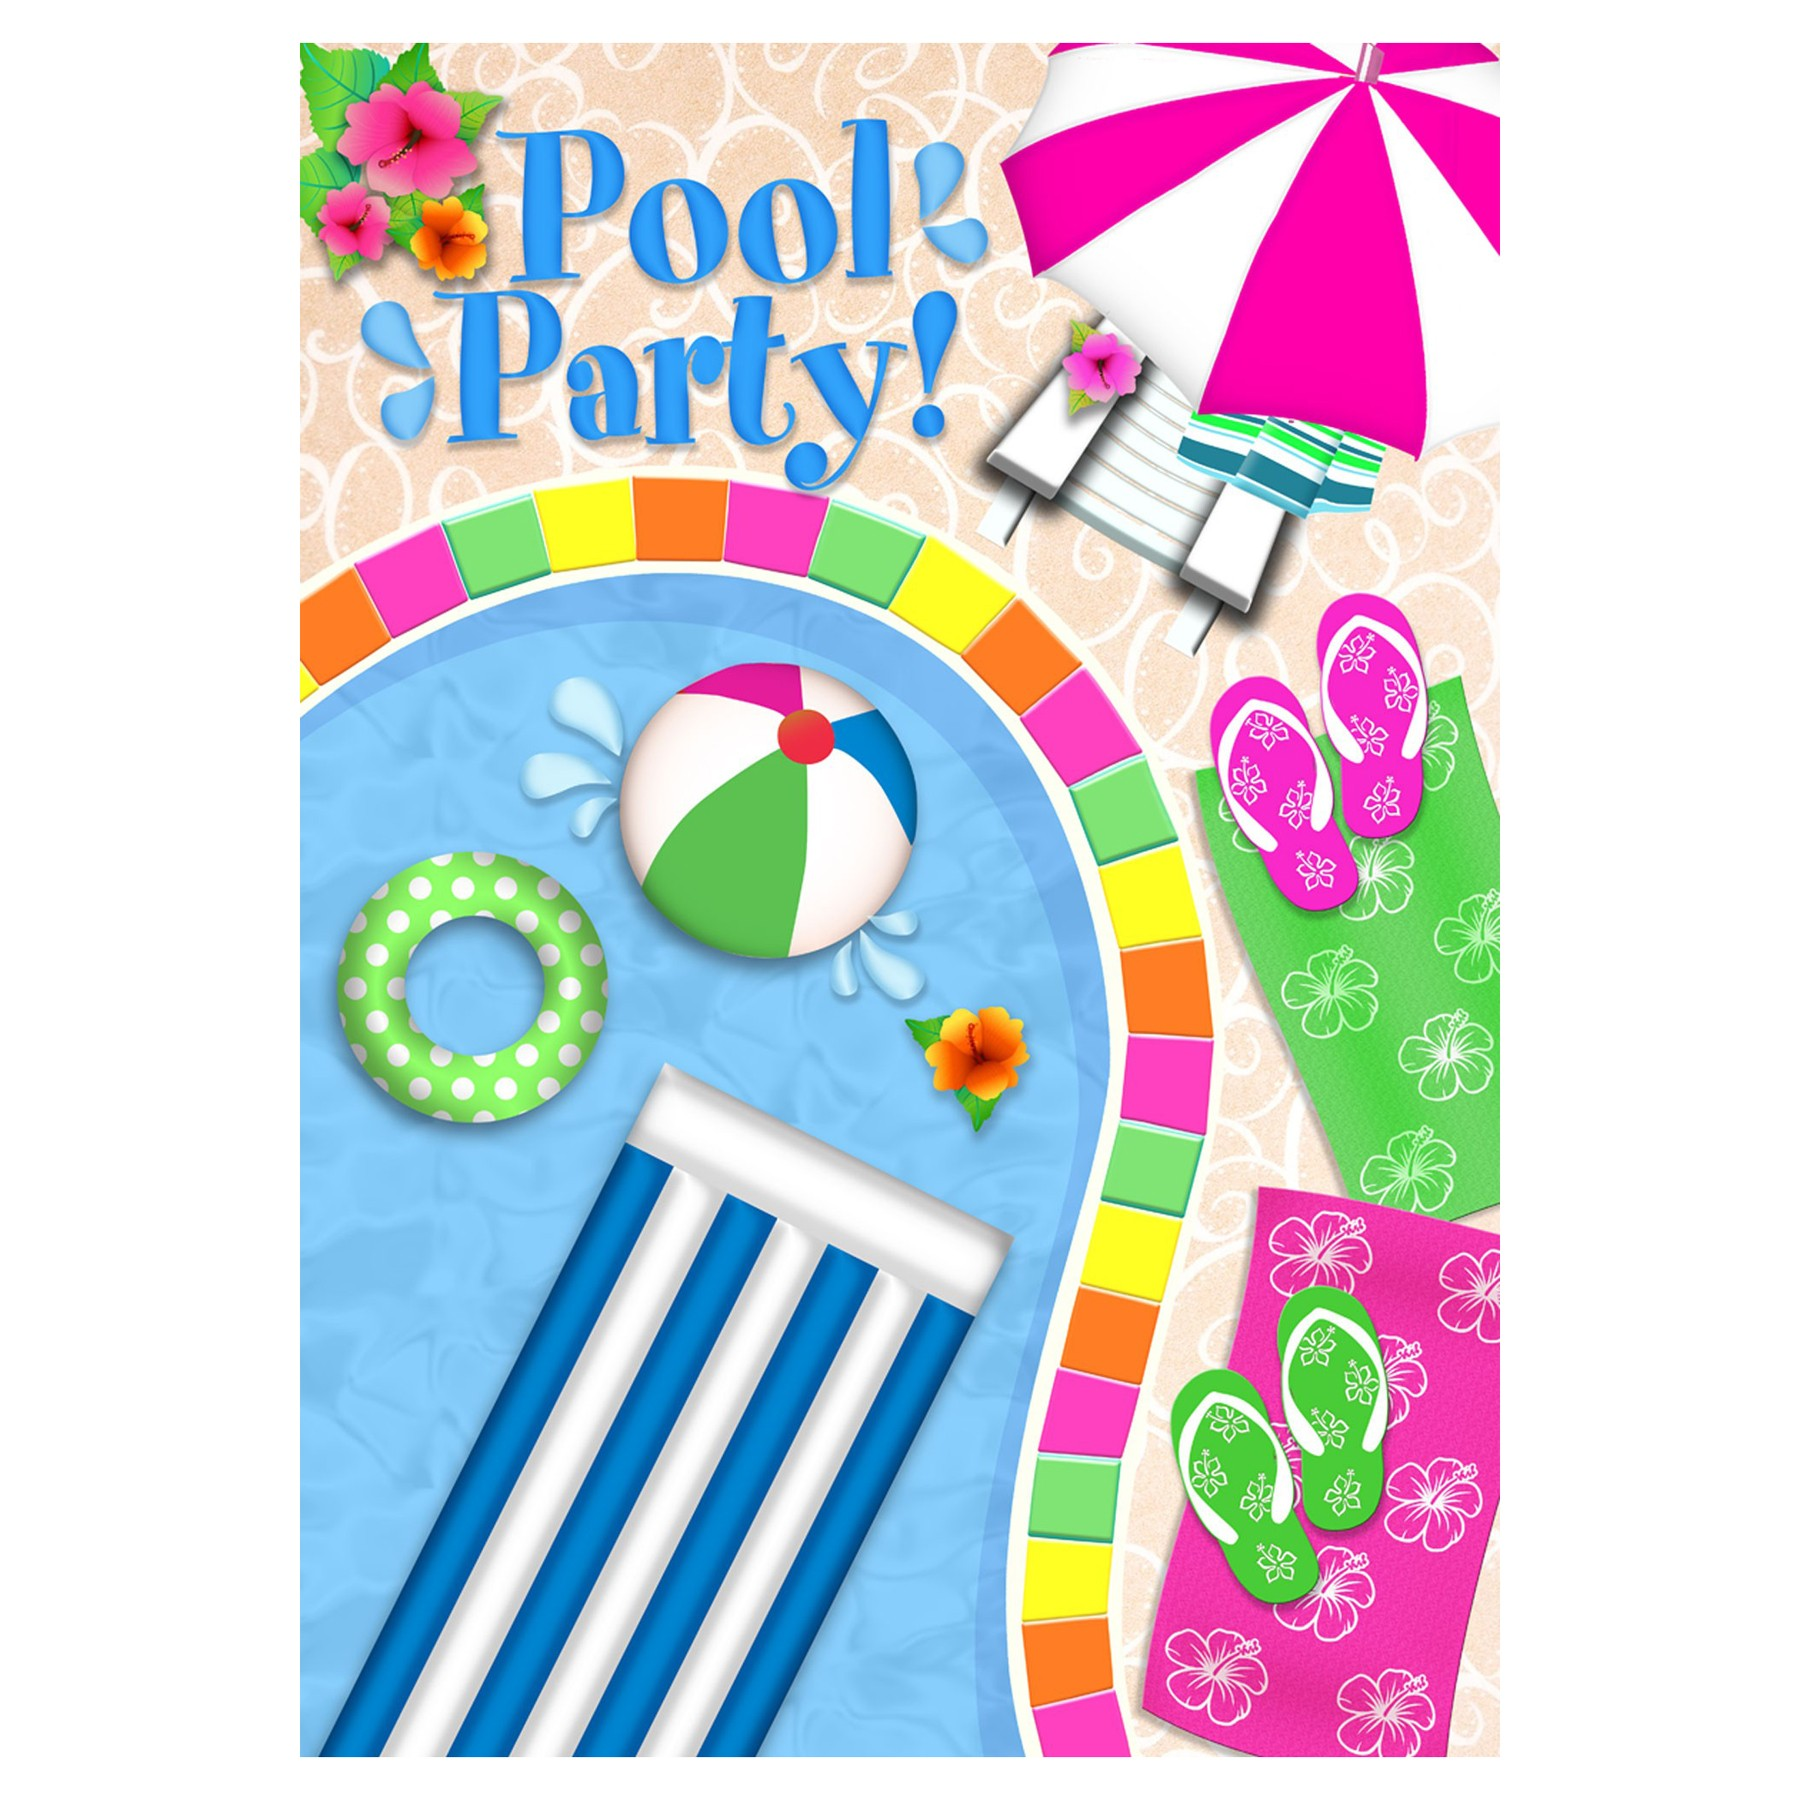 Background clipart pool party Panda Images Party Bbq Free